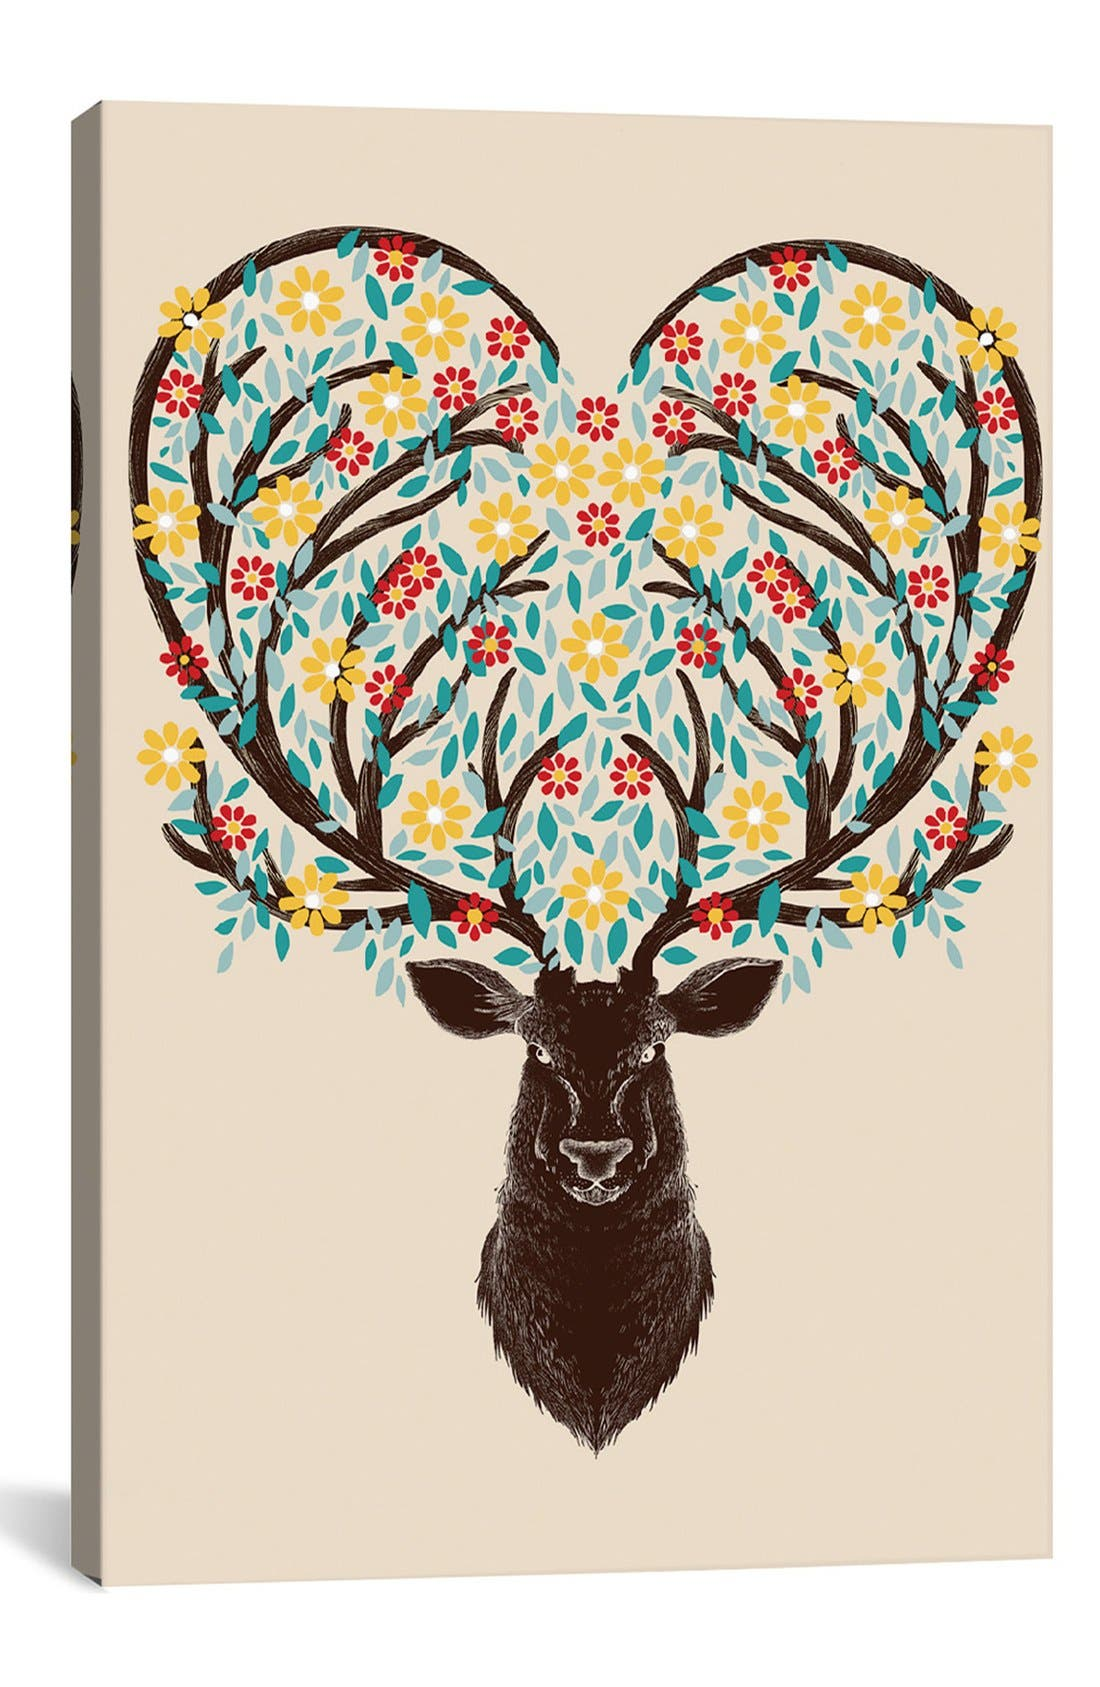 'Blooming Deer' Giclée Print Canvas Art,                             Main thumbnail 1, color,                             250